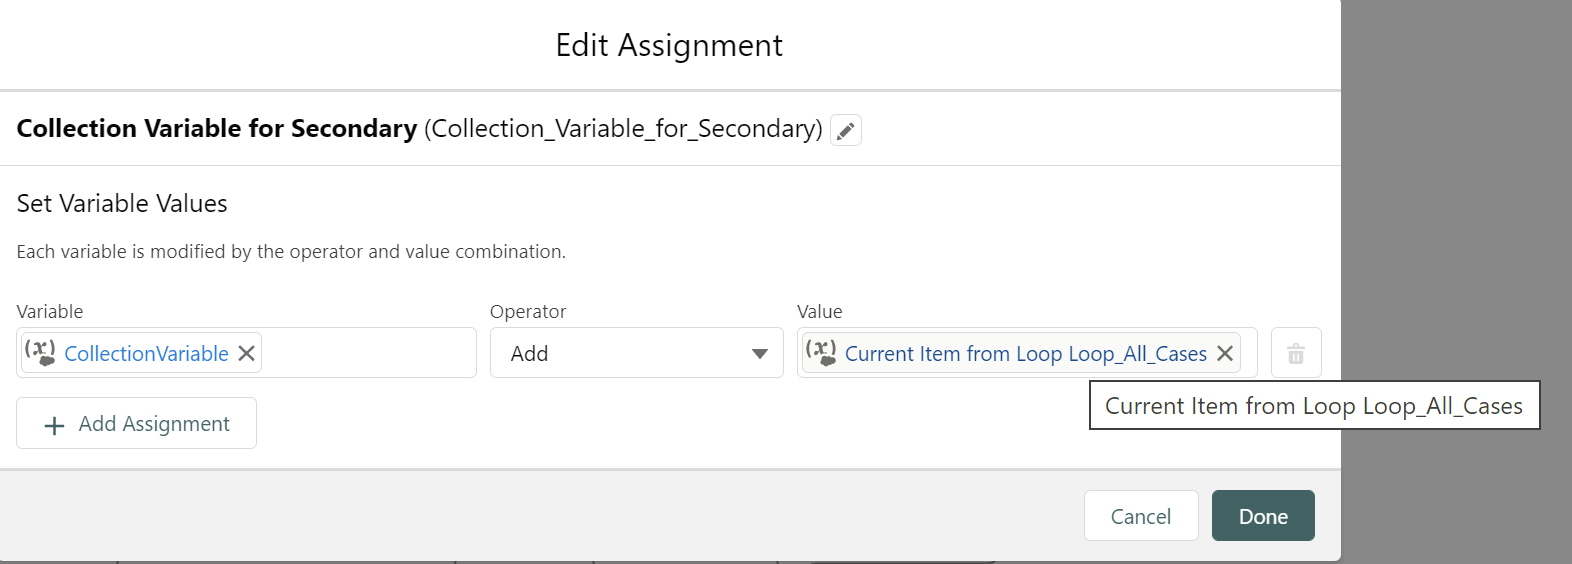 Assignment-4: Collection Variable